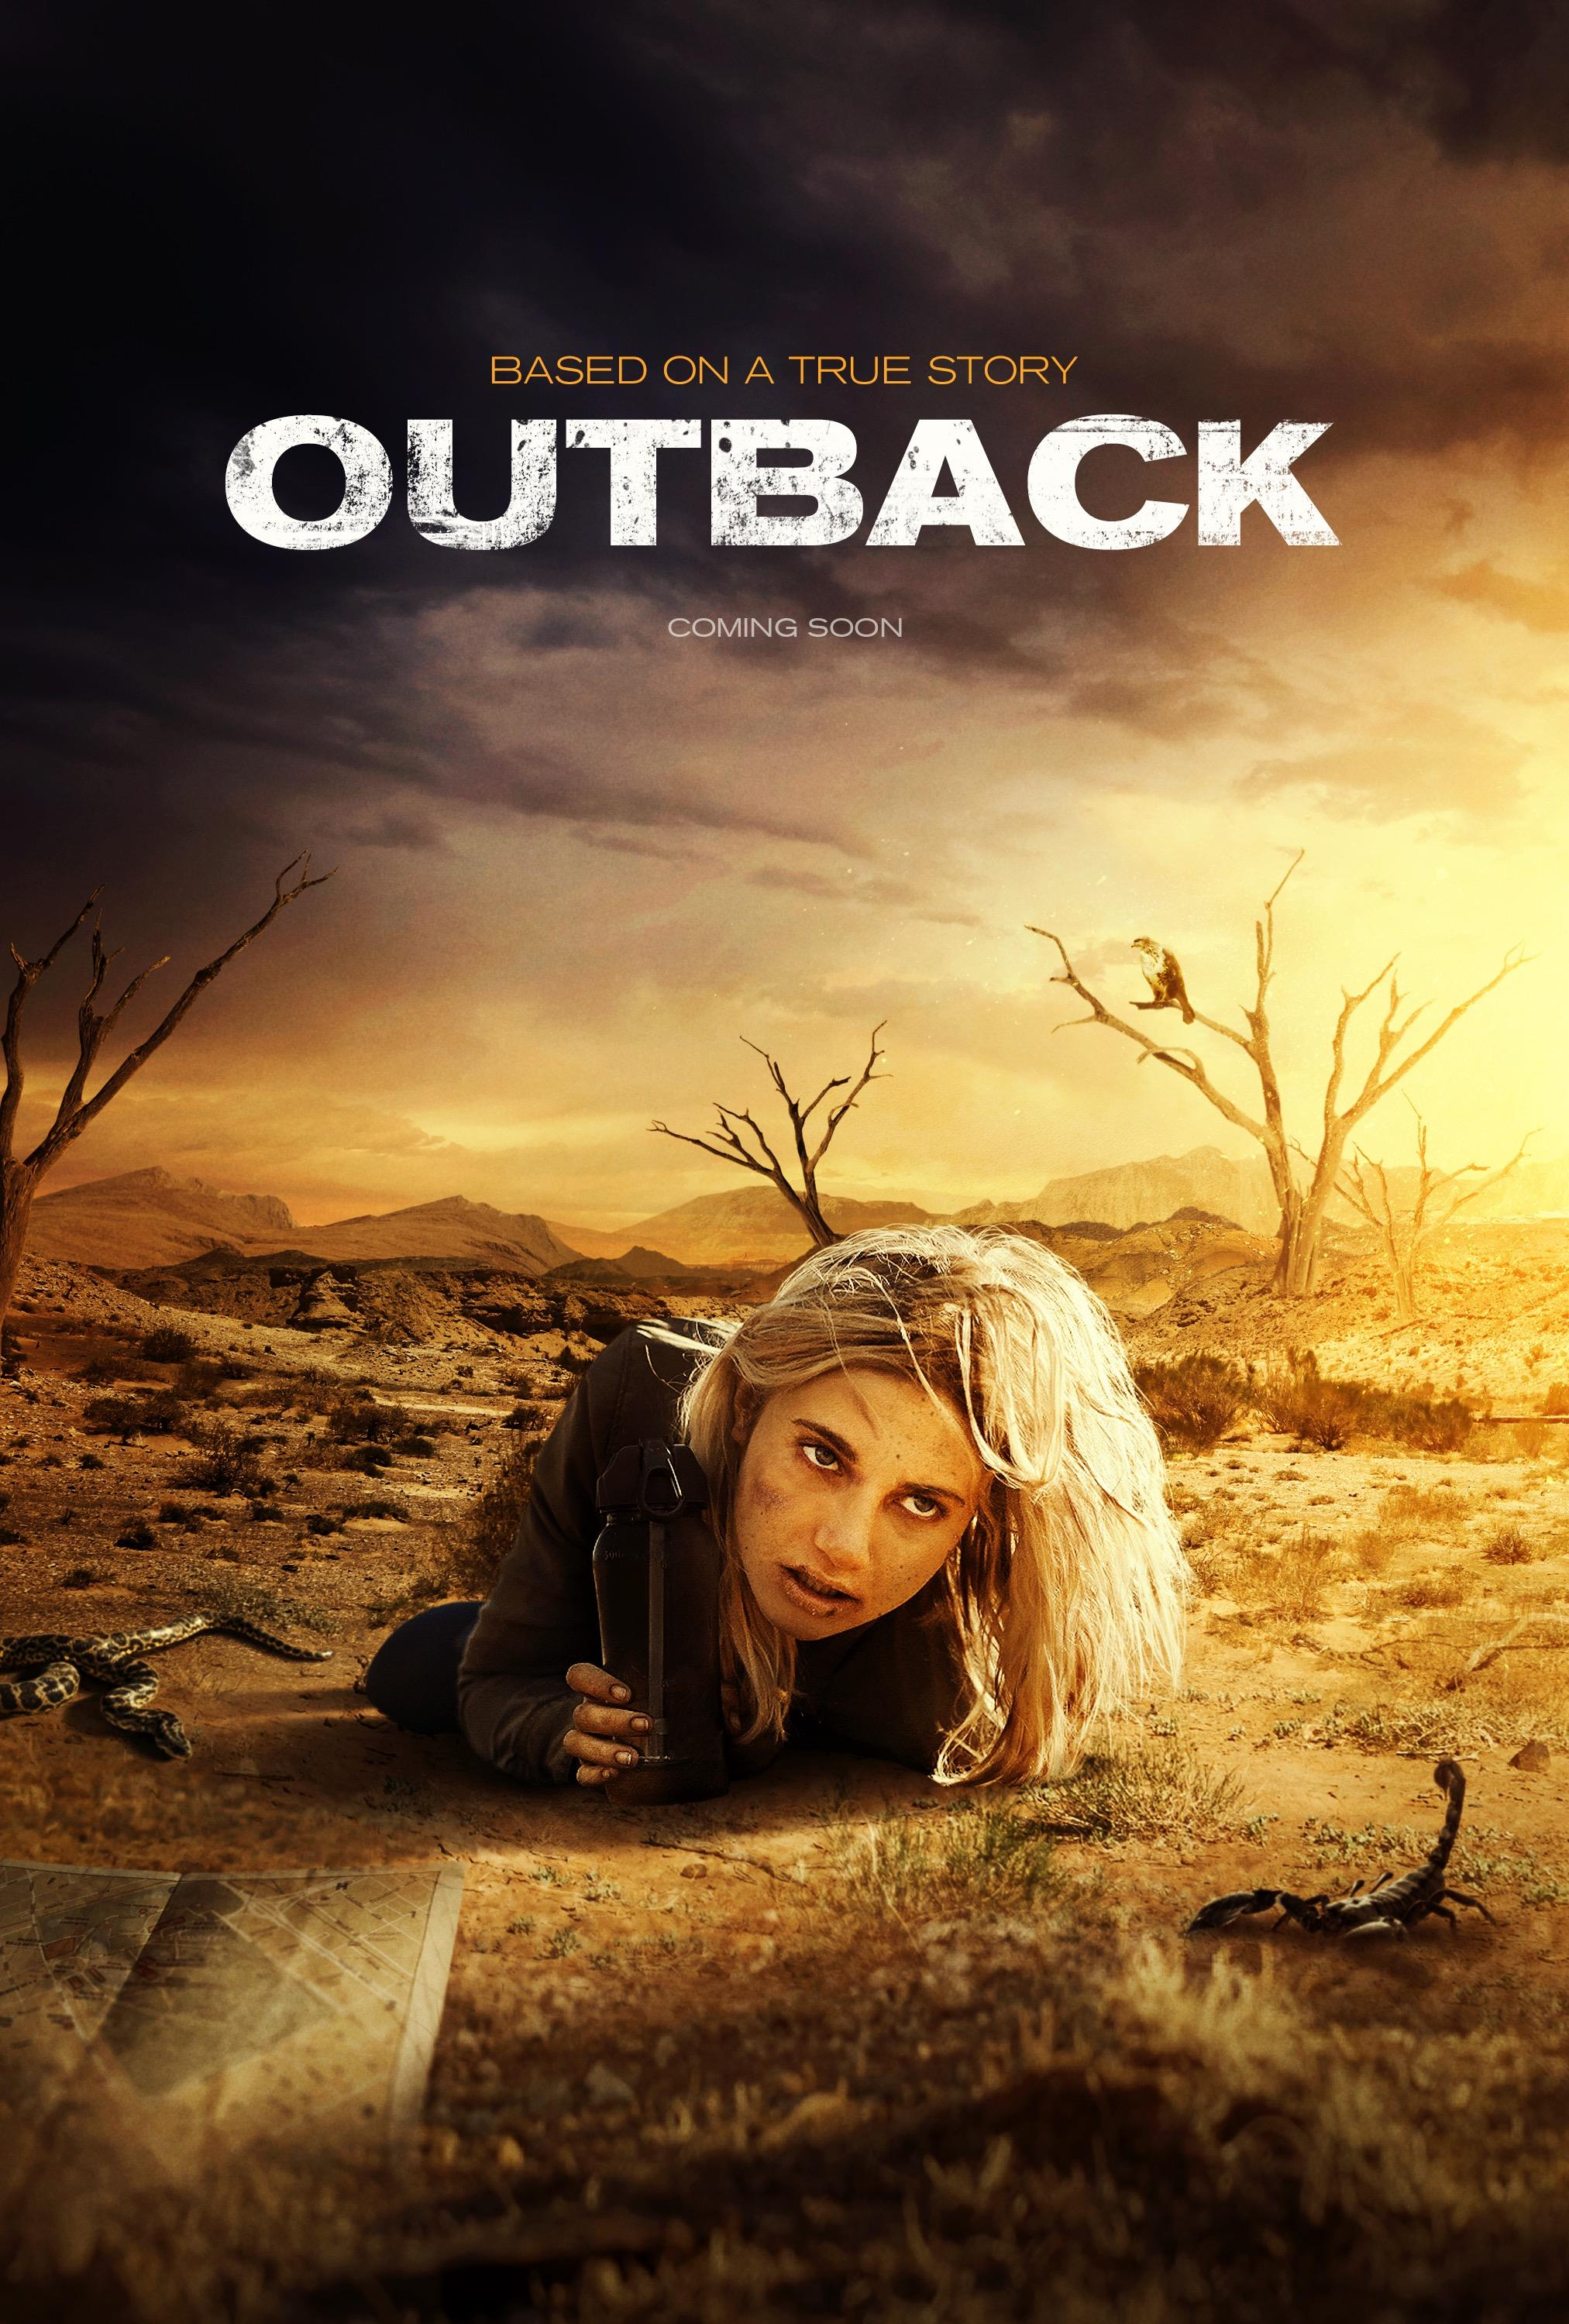 Outback Trailer & Poster